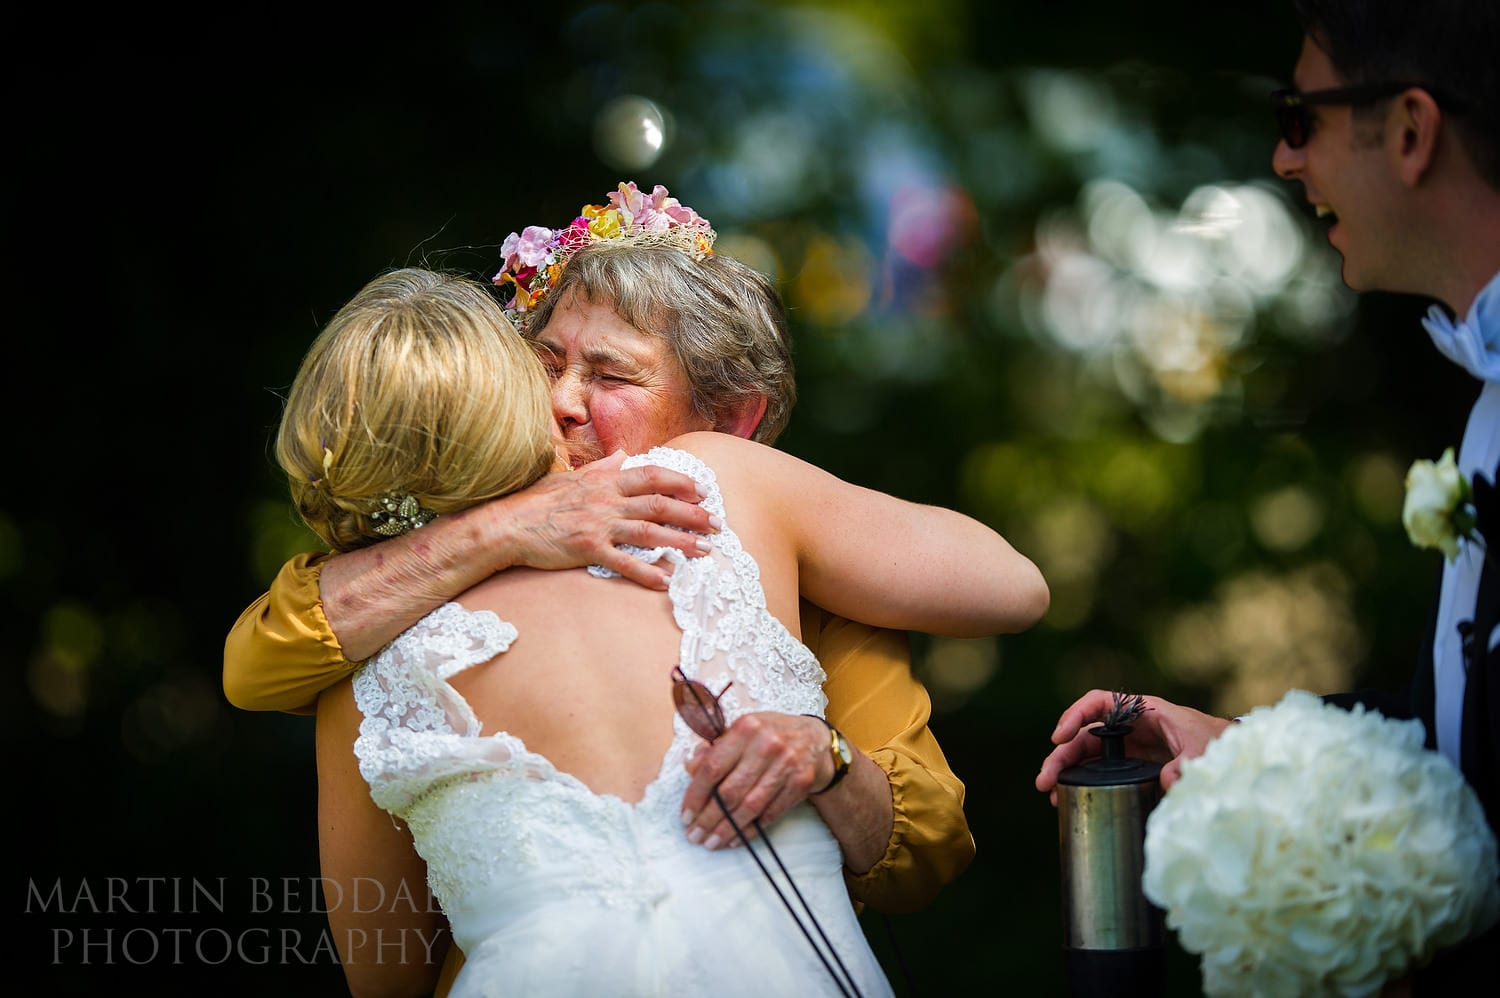 Hug for the bride